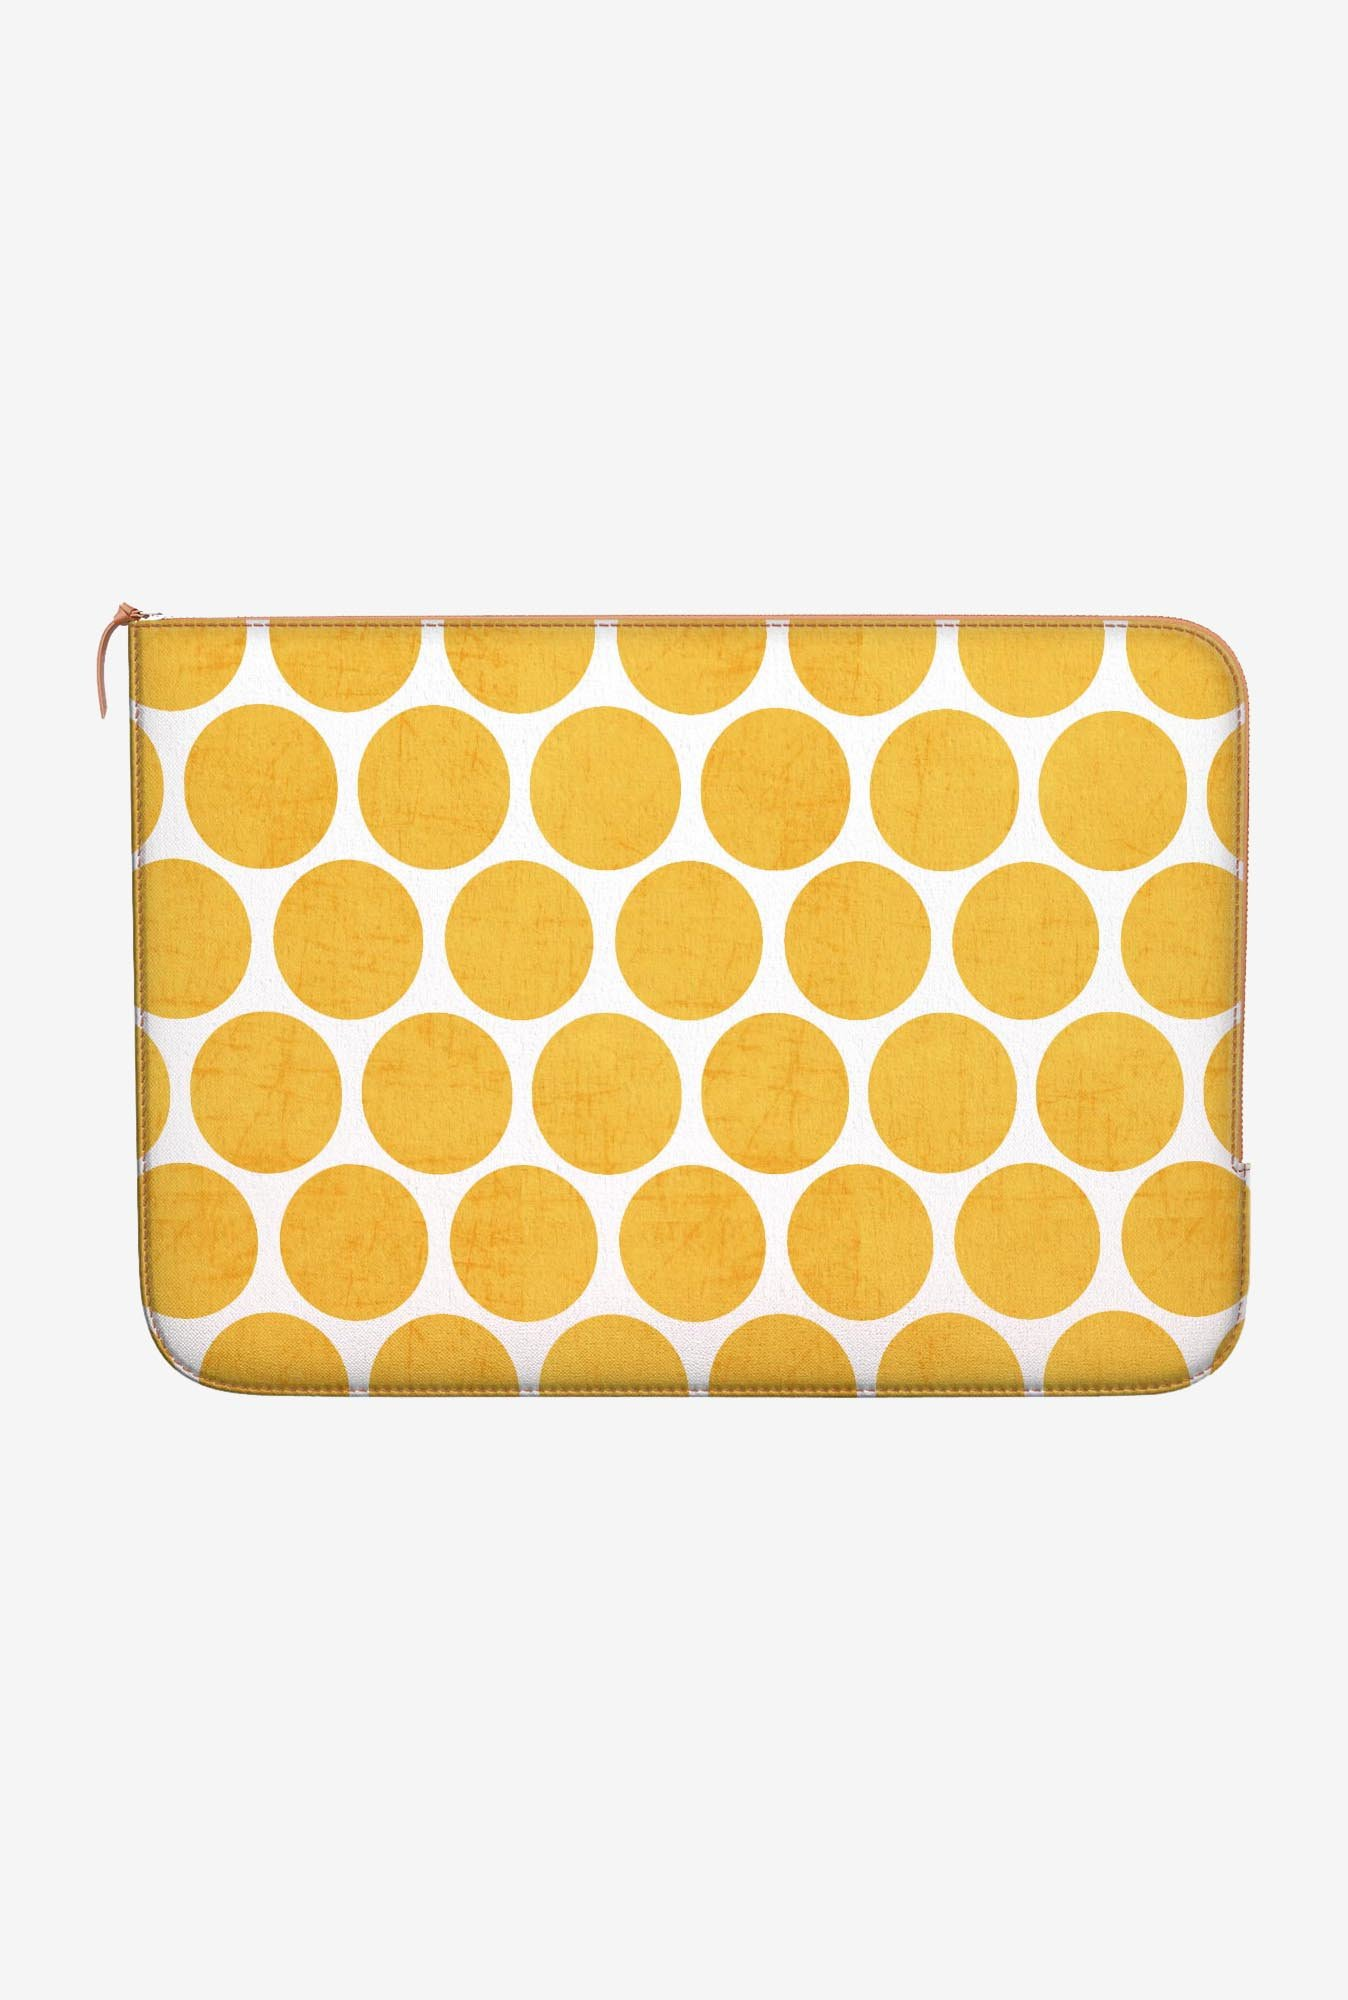 DailyObjects Yellow Dots MacBook Pro 15 Zippered Sleeve